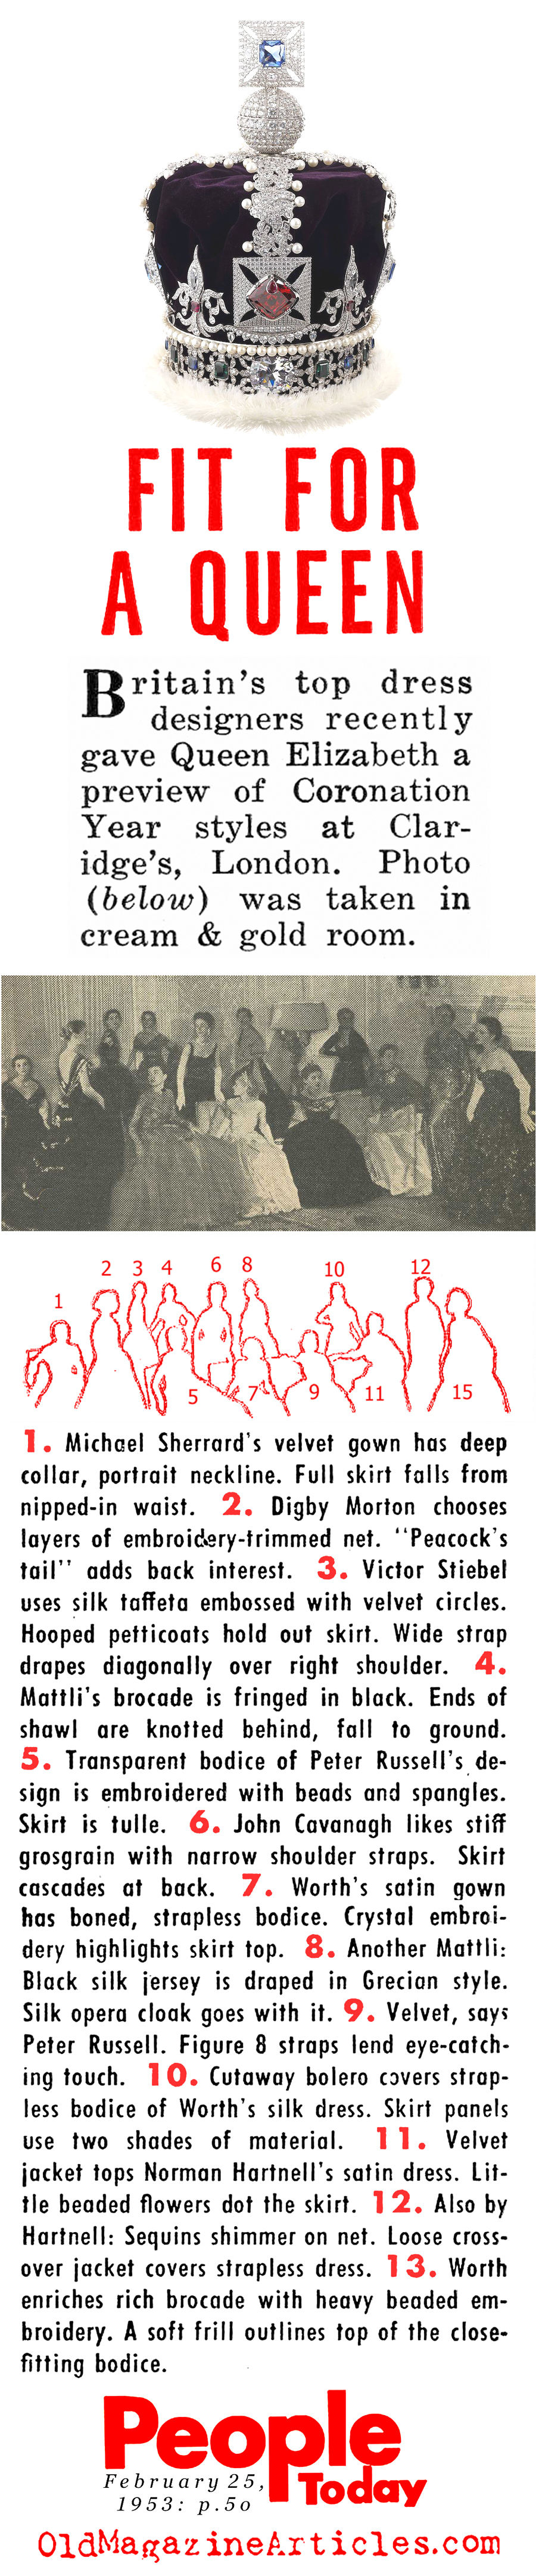 Coronation Gowns (People Today, 1953)